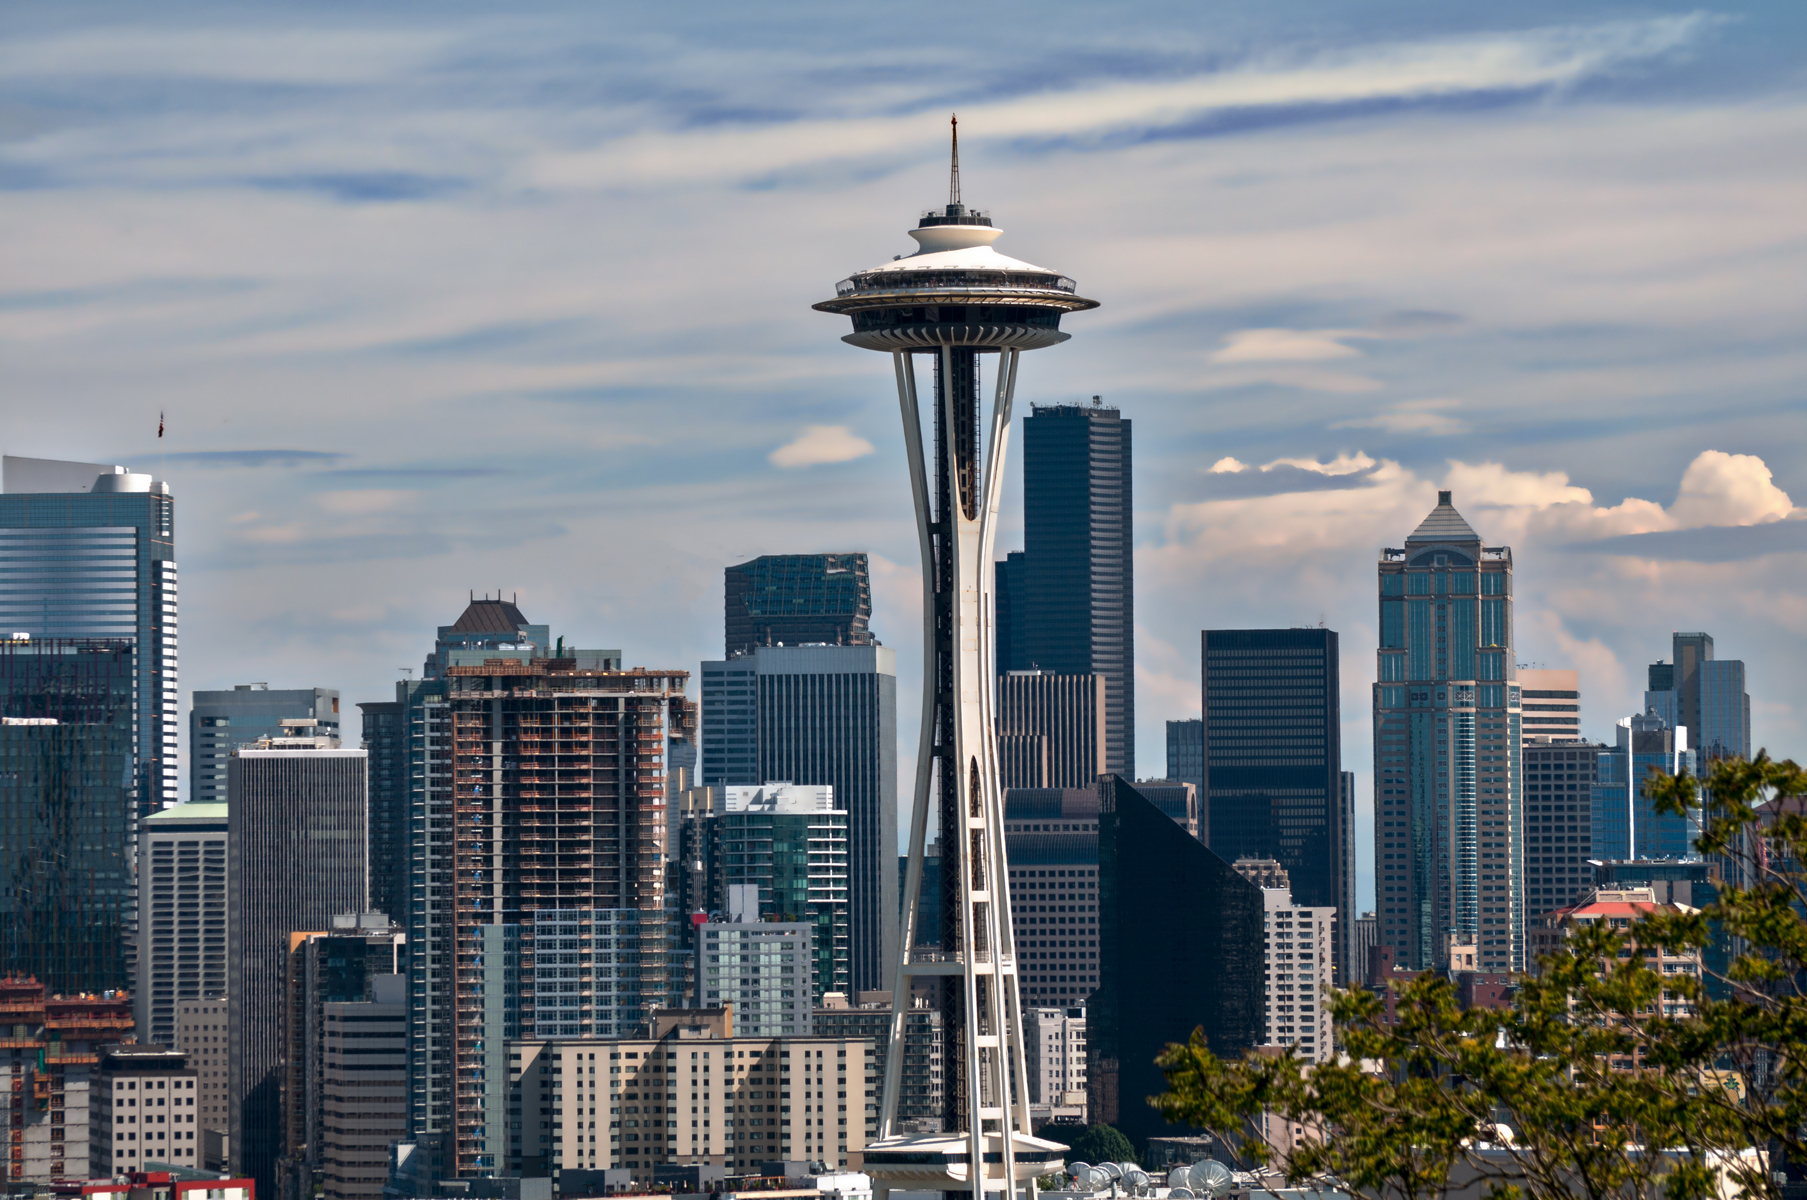 The Space Needle – Excerpts From a Photo Shoot | thewallgalleryblog